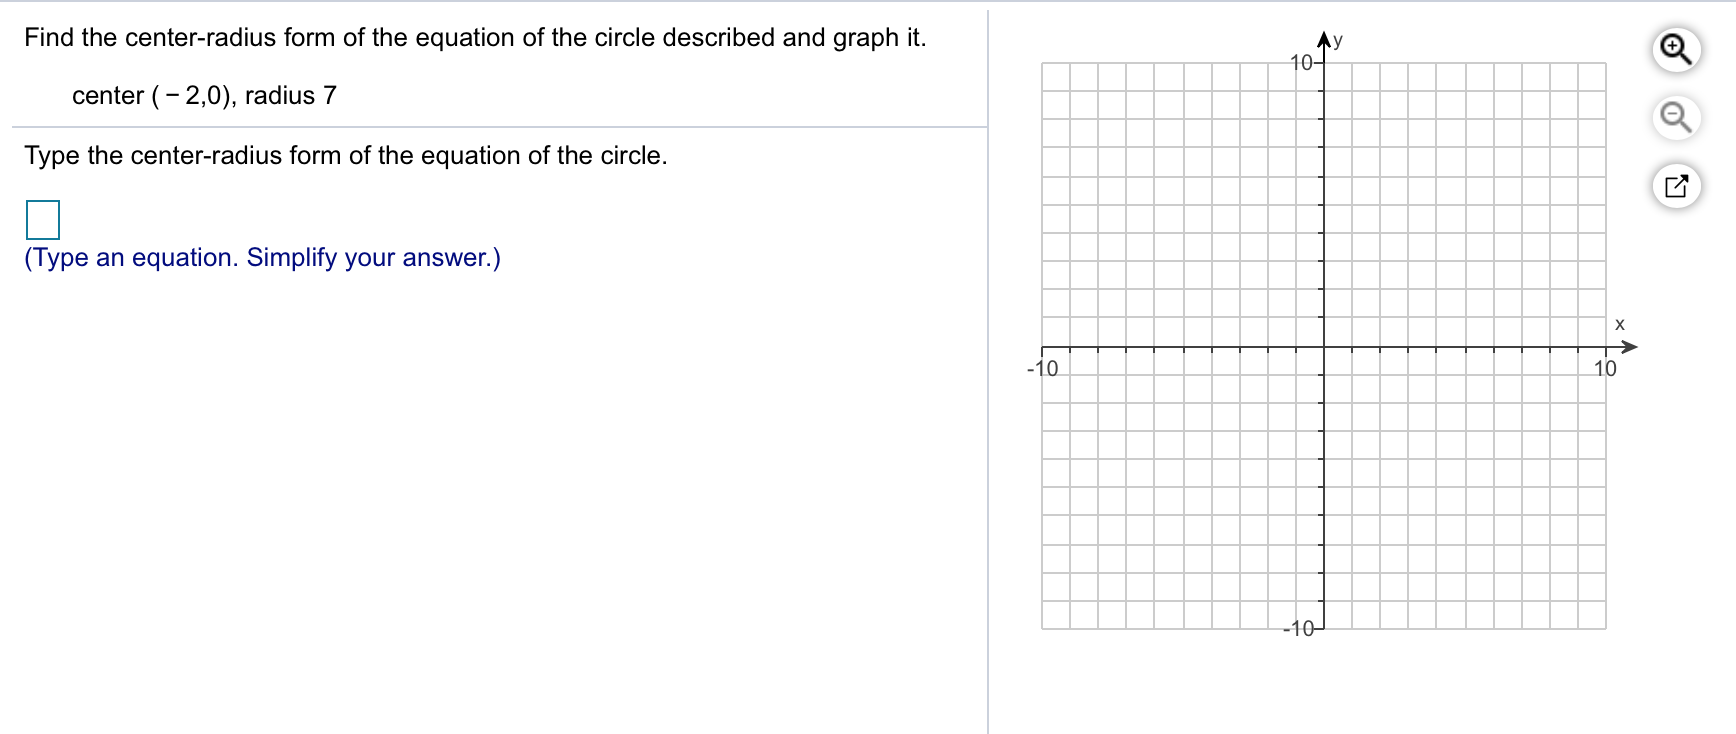 Find the center-radius form of the equation of the circle described and graph it center (-2,0), radius 7 Type the center-radius form of the equation of the circle (Type an equation. Simplify your answer.) 10